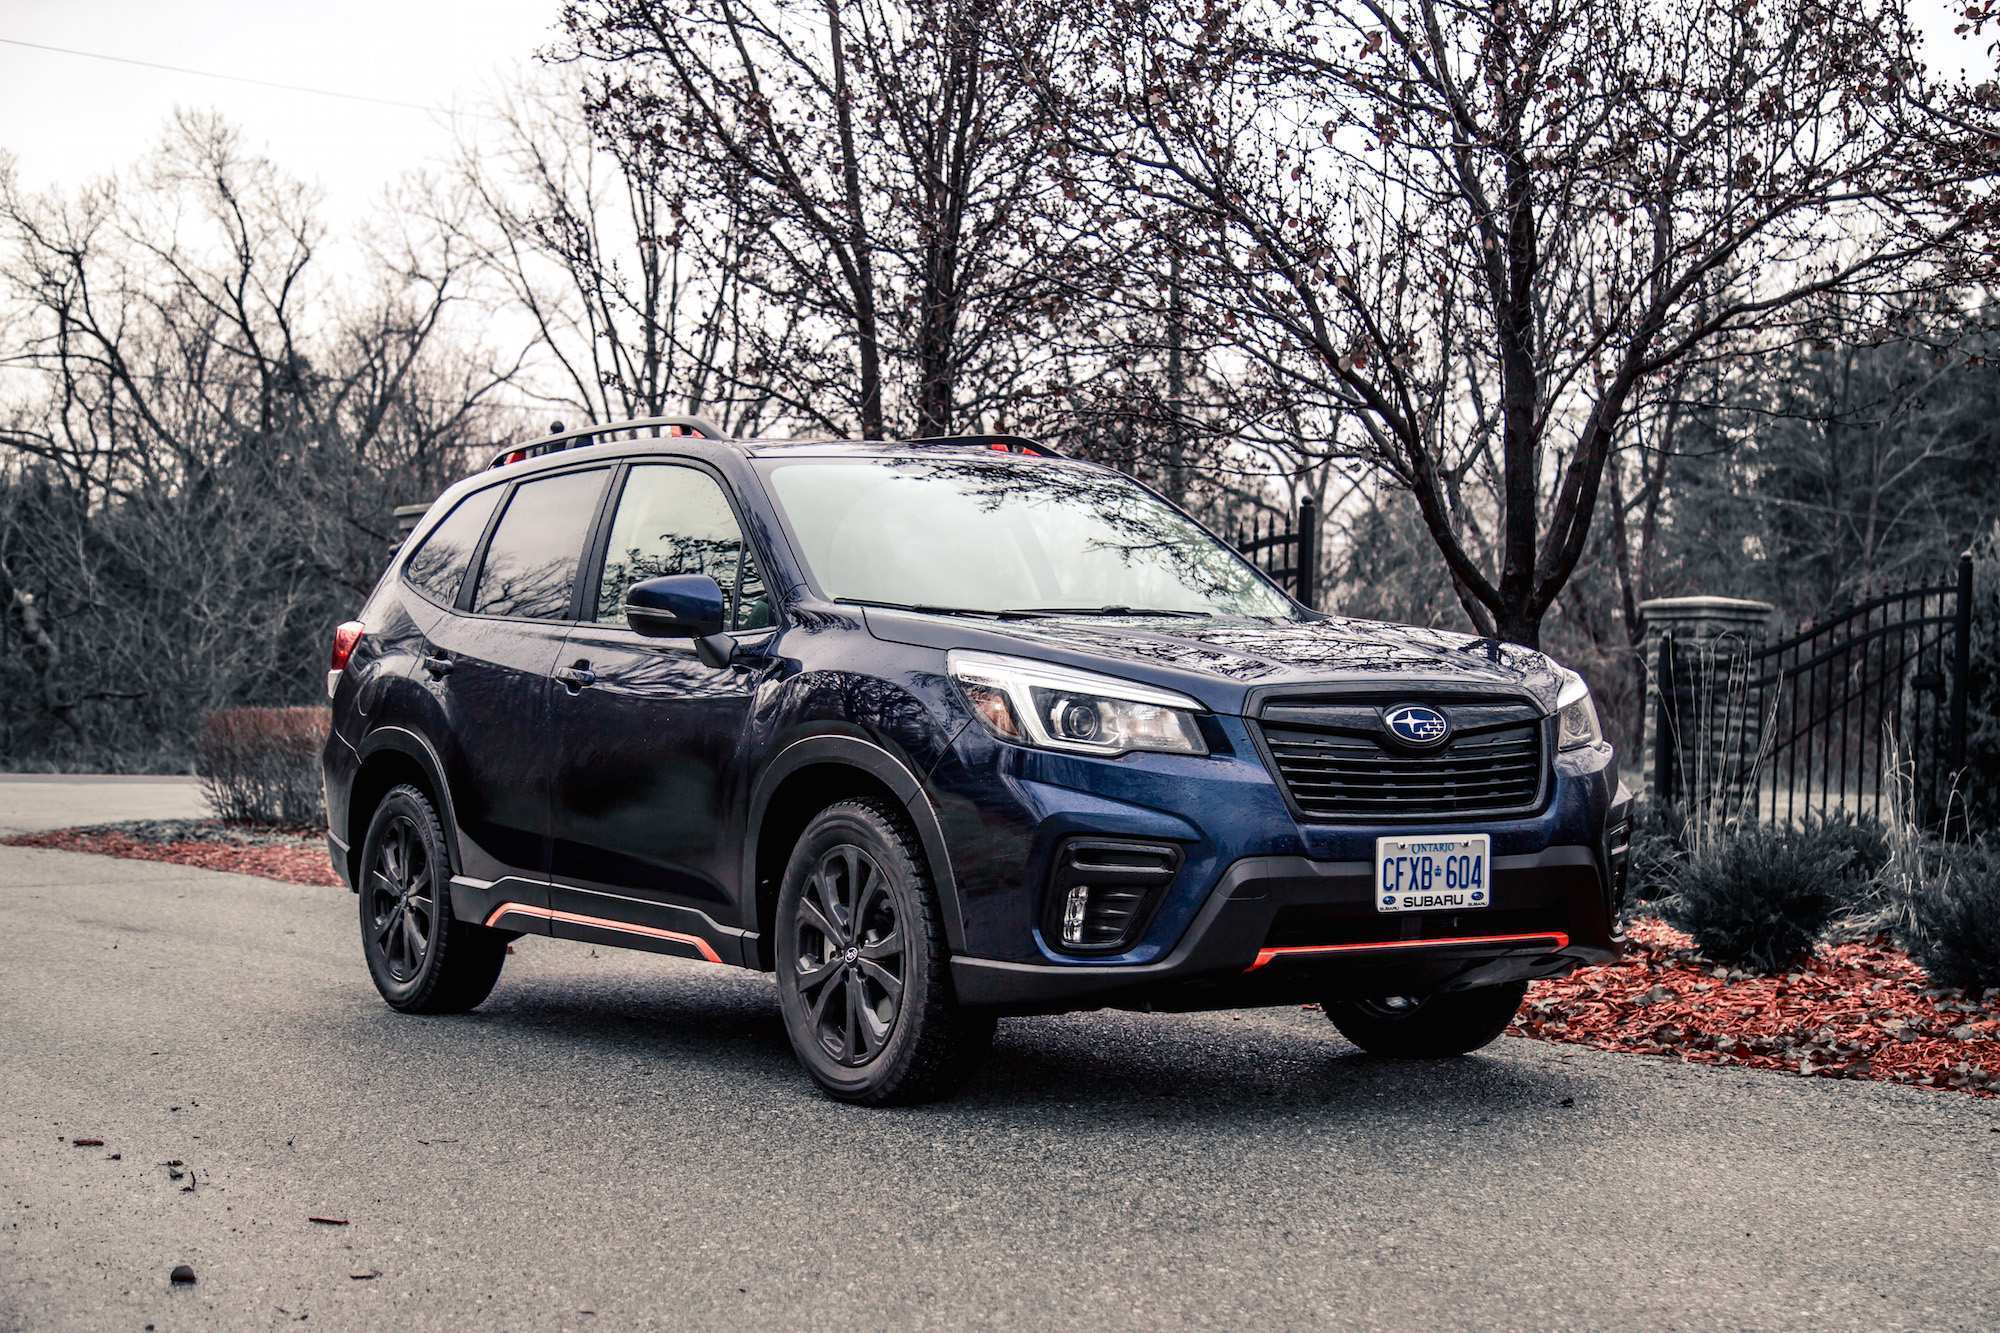 23 New 2019 Subaru Forester Mpg Release